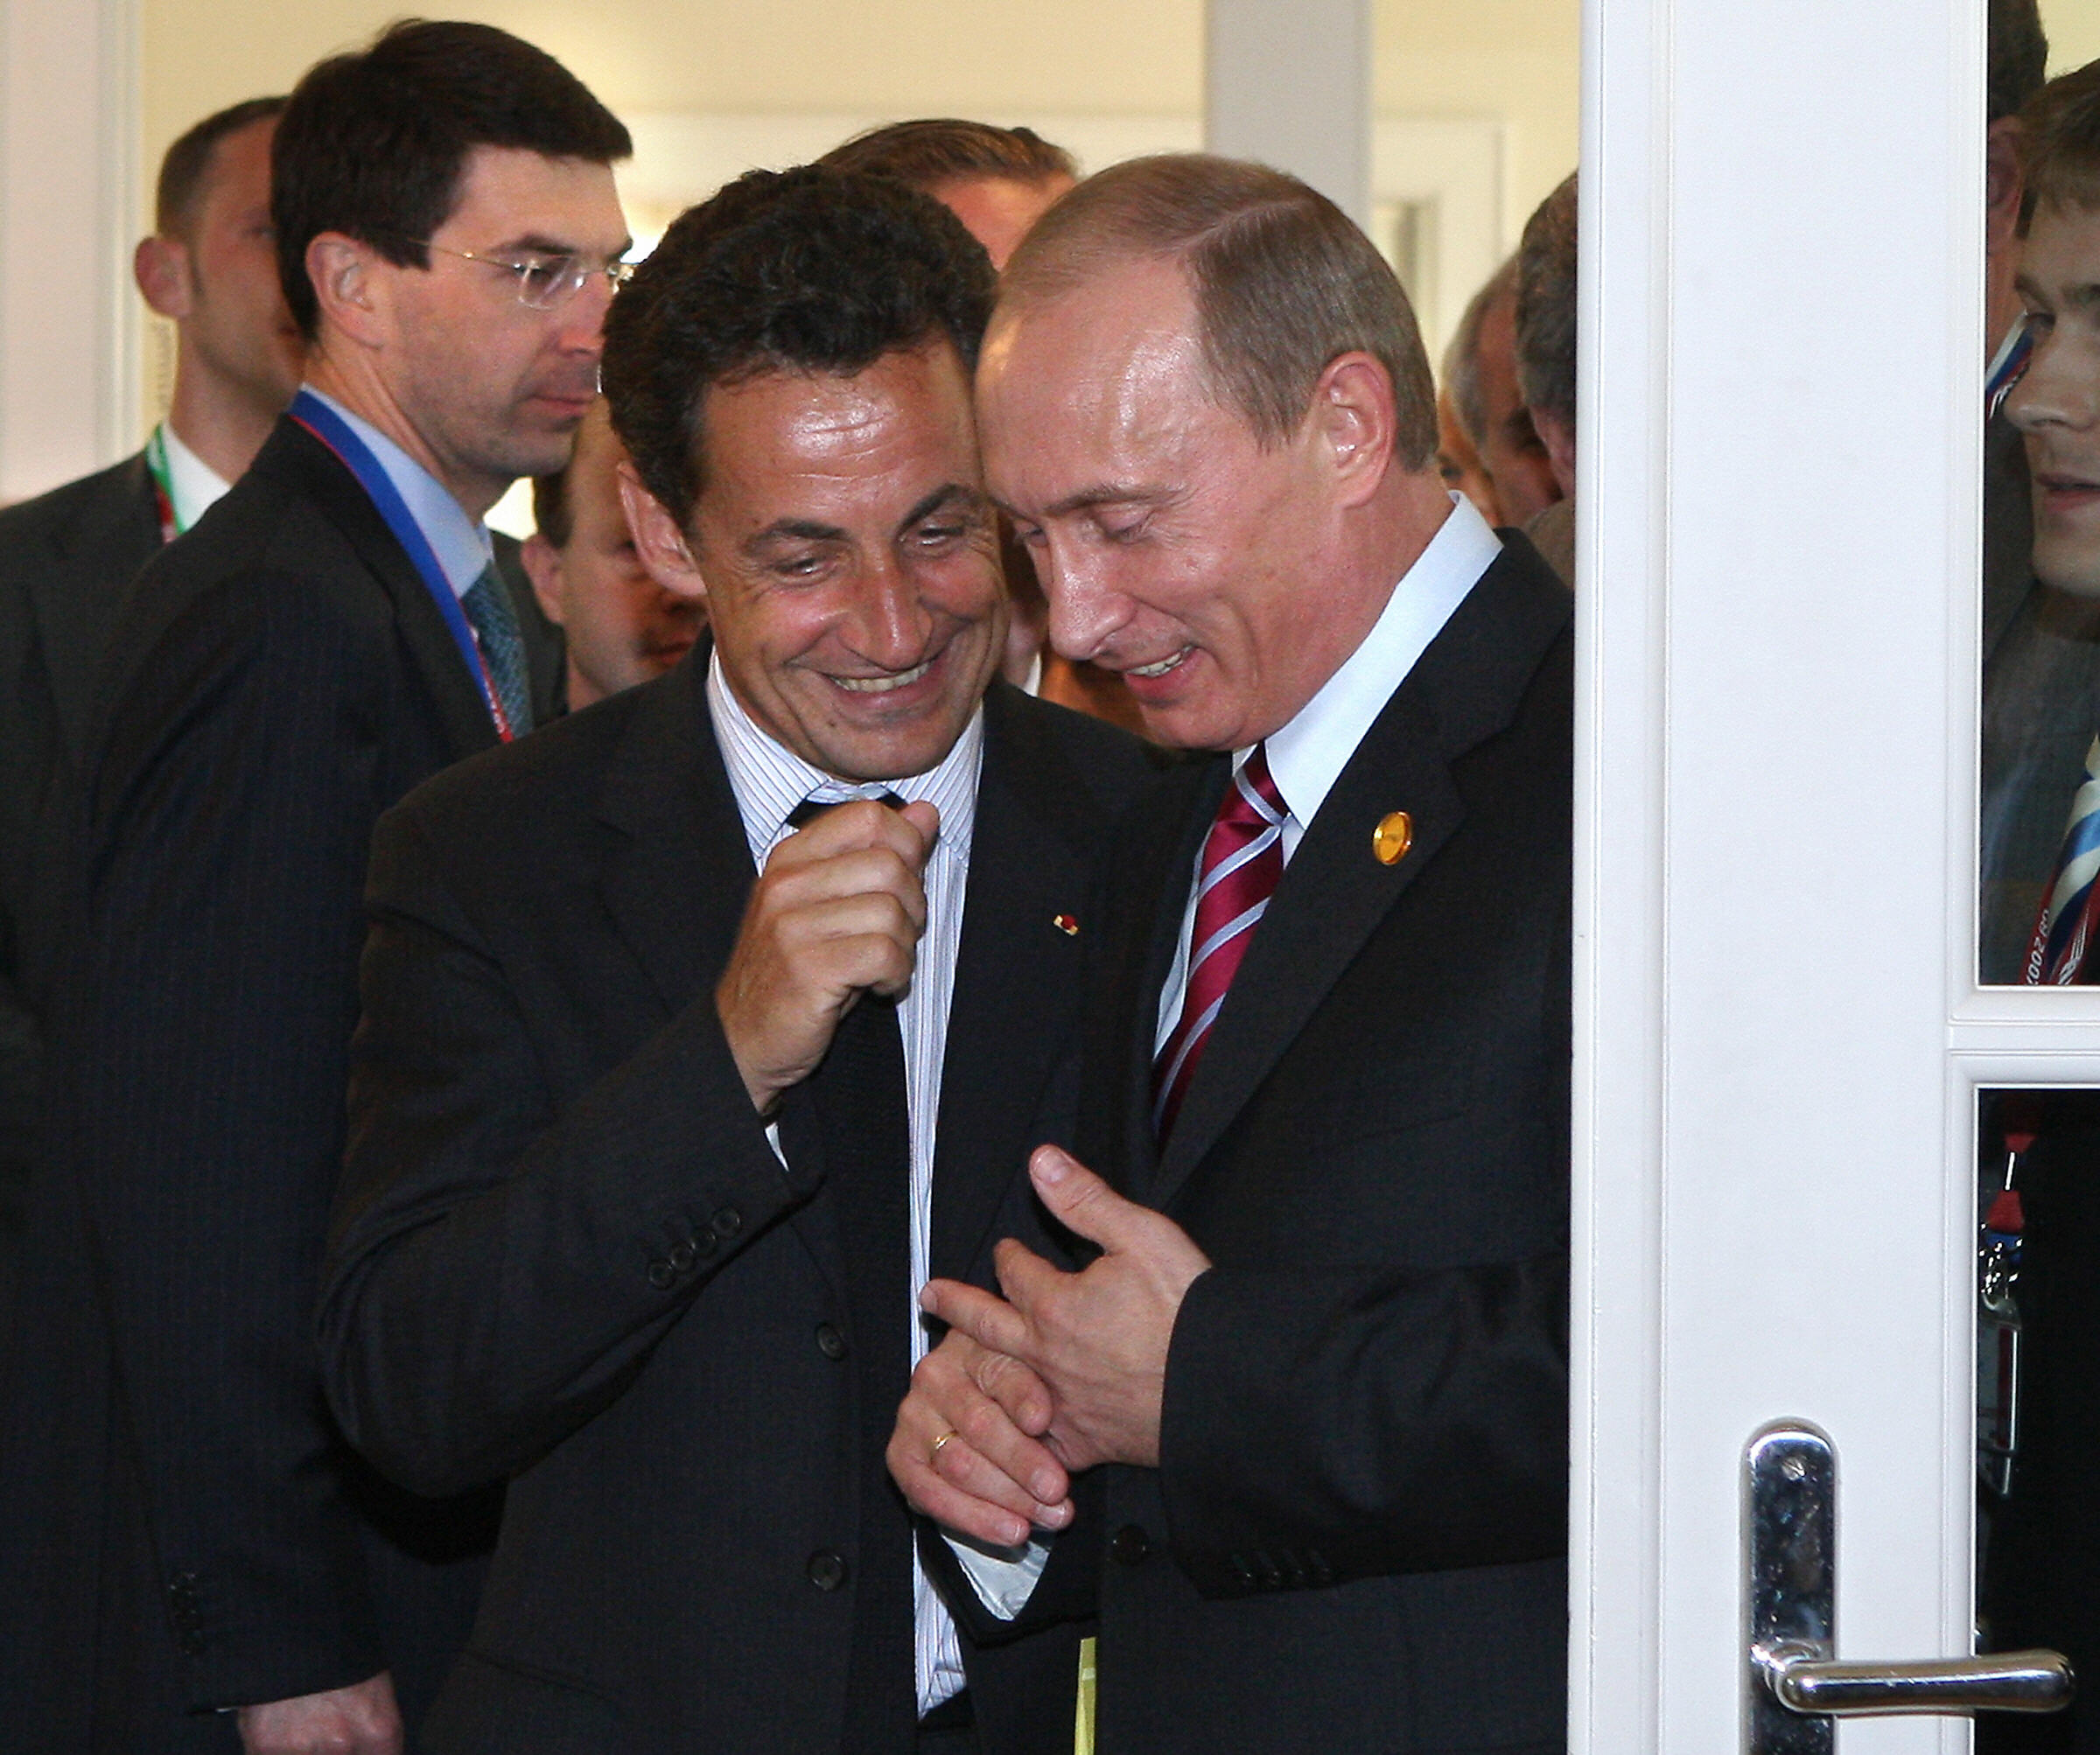 At one of many conferences during the 2007 G8 Summit, then-French President Nicolas Sarkozy  apparently arrived late, after a meeting with Vladimir Putin. Perplexingly, Putin is a noted teetotaler; had Sarkozy been drinking for two at lunch? He appeared befuddled, giggly and unsure how to proceed — asking the audience,  Do I answer your questions?